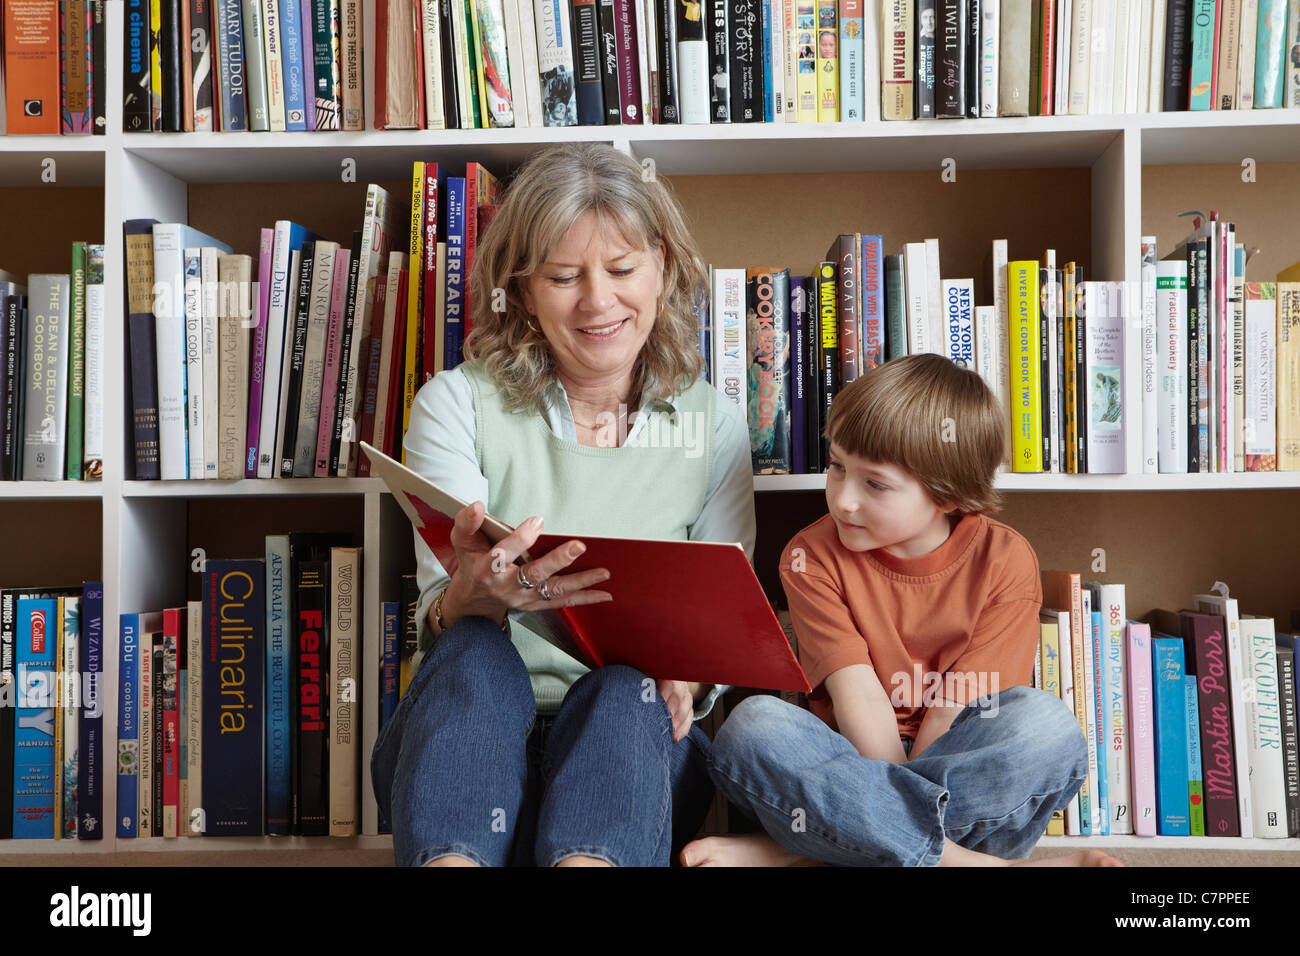 Woman reading with grandson by bookshelf - Stock Image